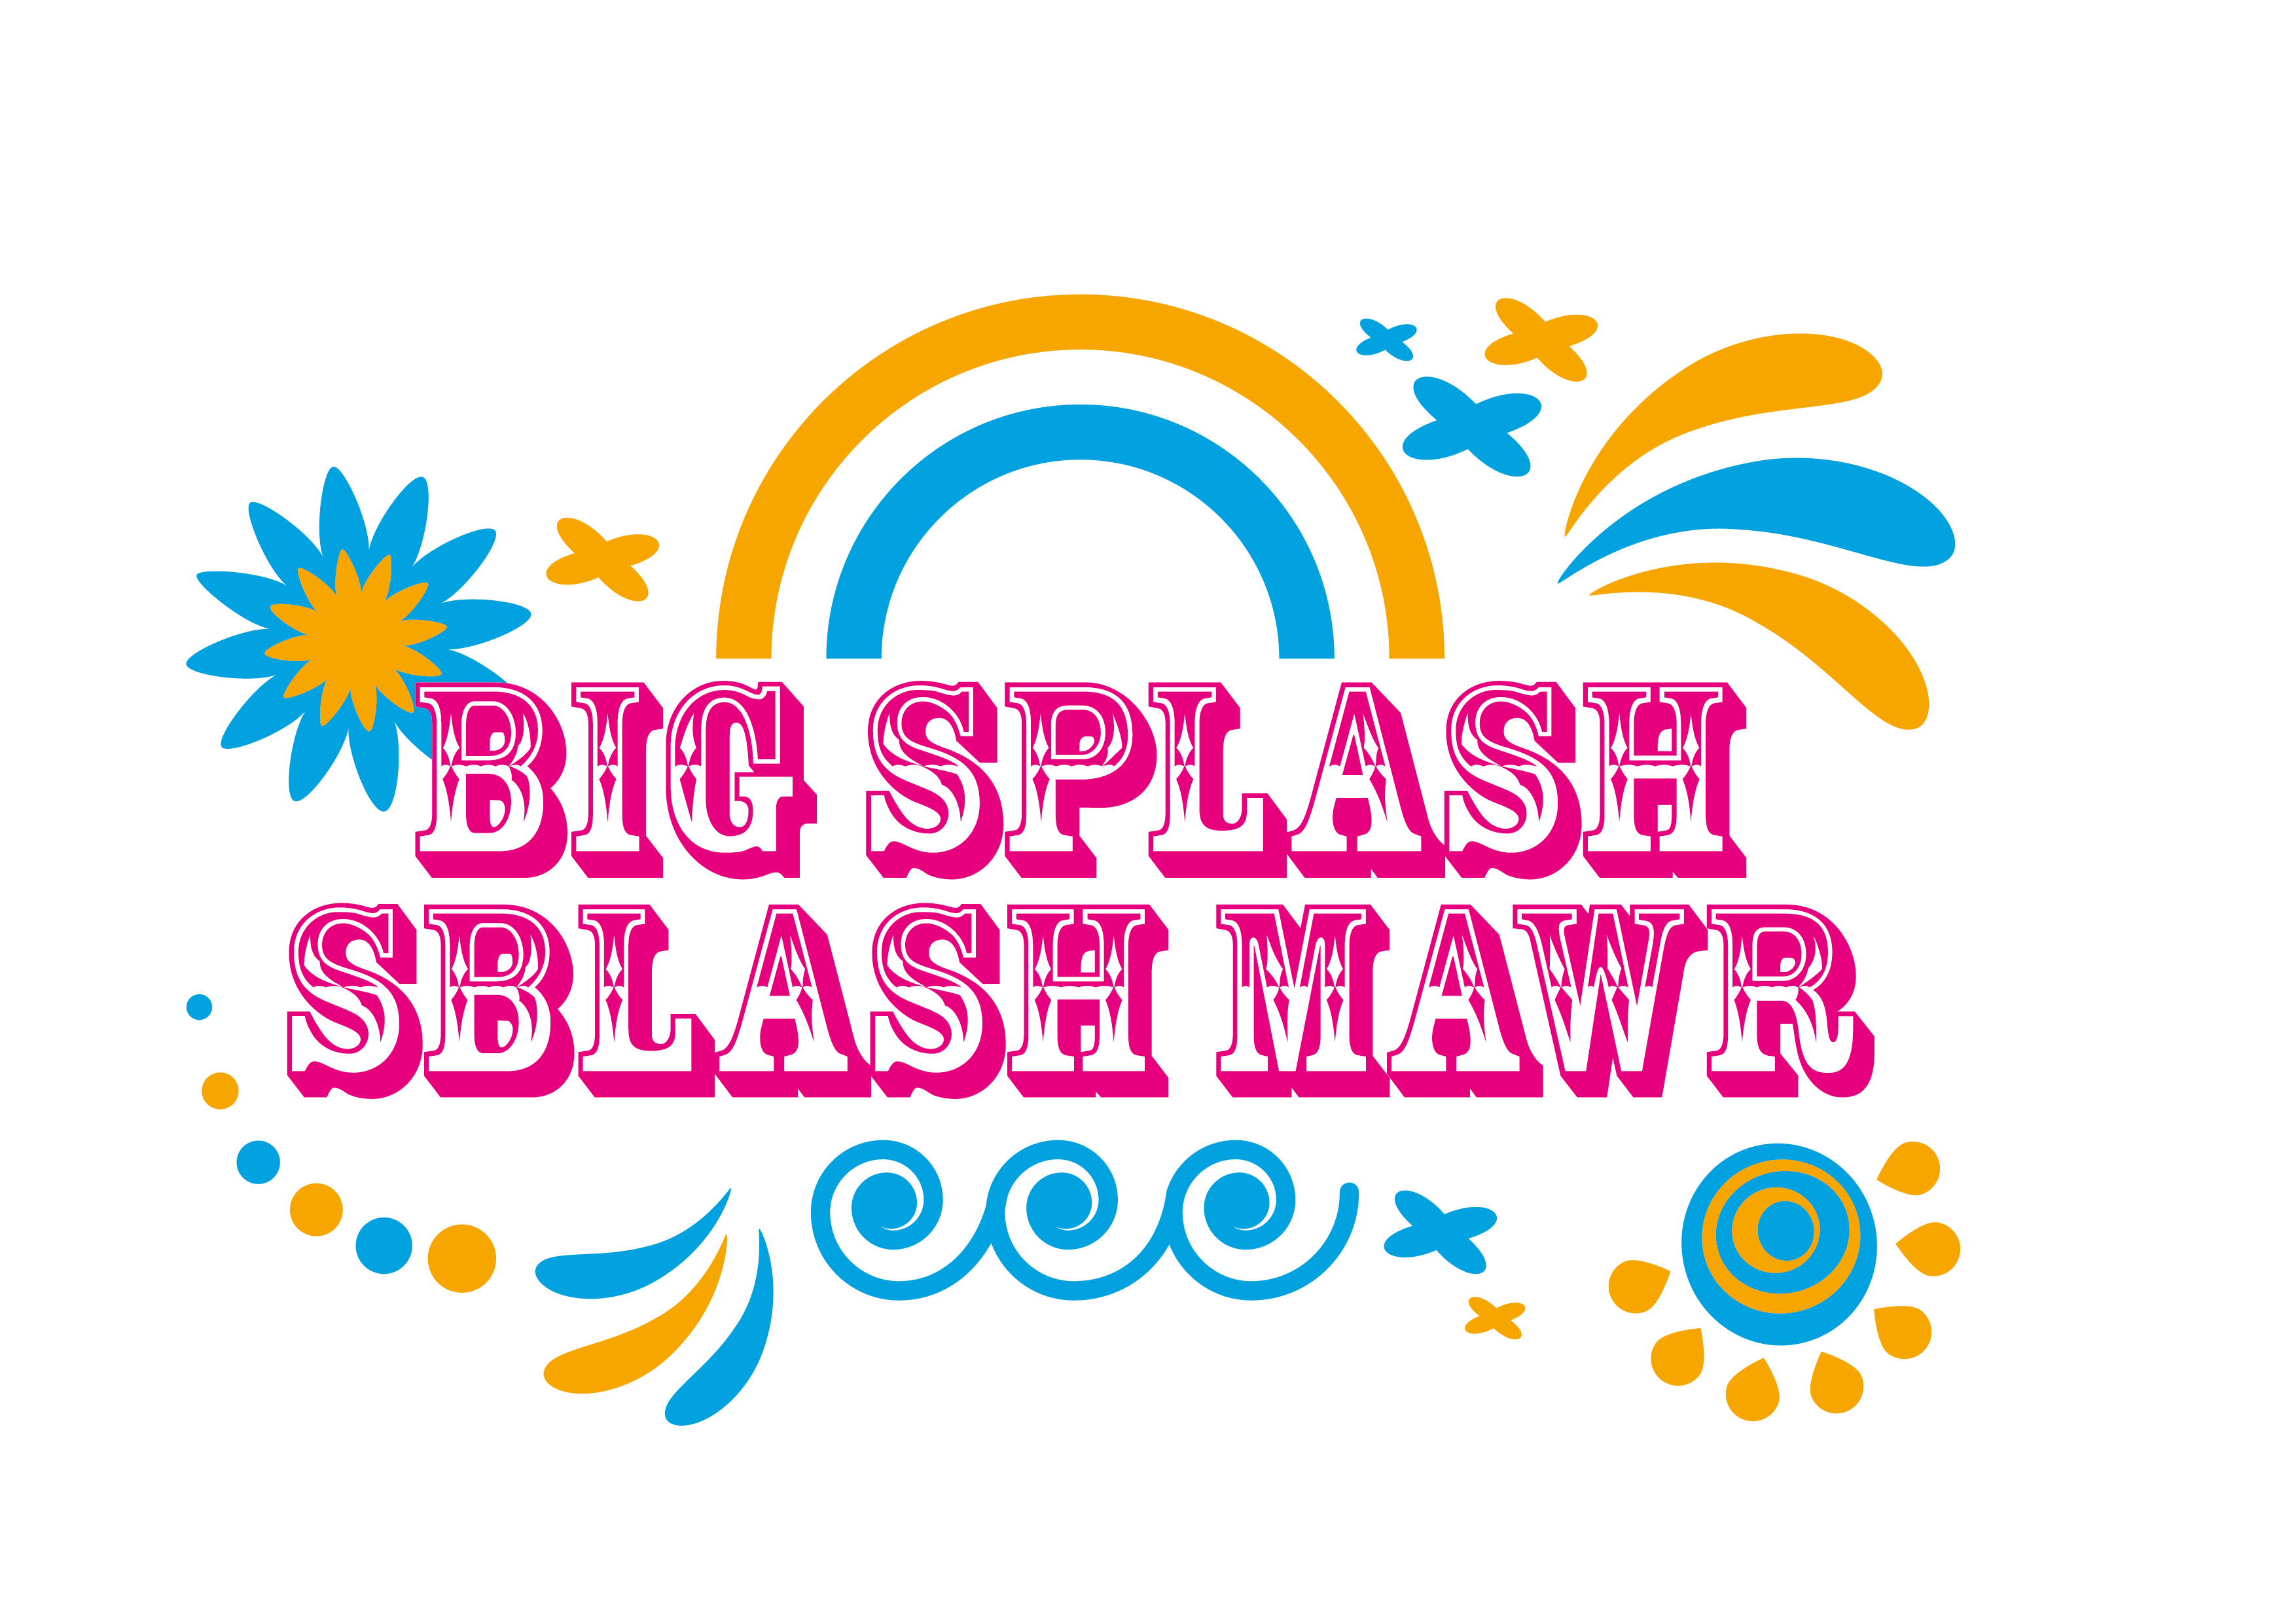 Family Street Theatre FestivalSaturday 20 & Sunday 21 July 2019Dydd Sadwrn 20 & Dydd Sul 21 Gorffenaff 2019Newport's much-loved outdoor arts and street theatre festival the Big Splash is returning to the city street this summer on Saturday 20 & Sunday 21 July for a weekend jam-packed with free events and performances for families and all you big kids!Watch in amazement as the familiar city centre streets aretransformed into a huge outdoor stage with dare-devil performances, immersive experiences and plenty of laughs popping up where you least expect them!For all the latest updates, visit the Big Splash website, Facebook and Twitter pages. There will also be lots of exciting content posted on The Riverfront's Instagram.Check out the highlights from last year's festival...